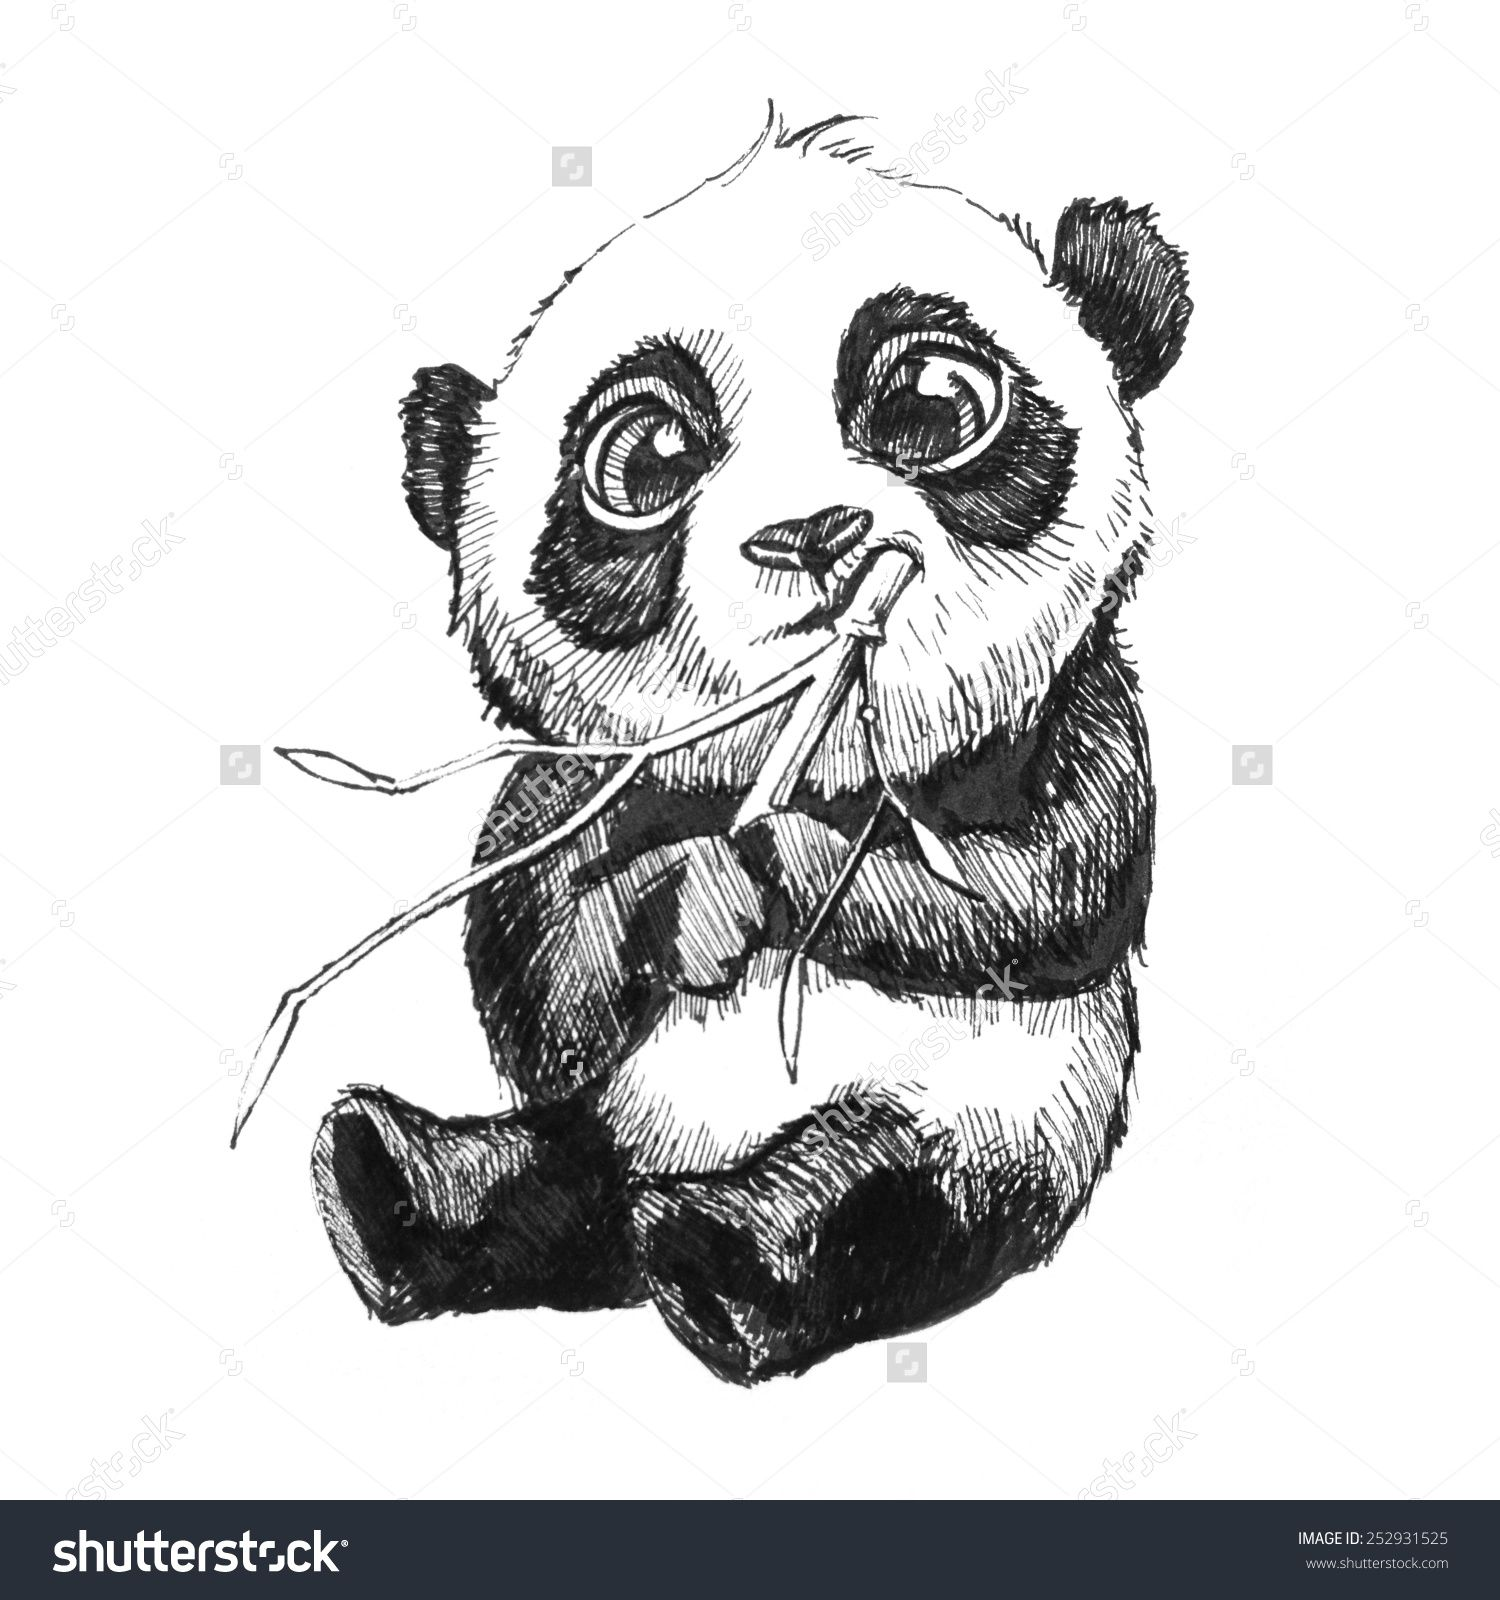 stockphotocuteadorablebabypandabearillustration